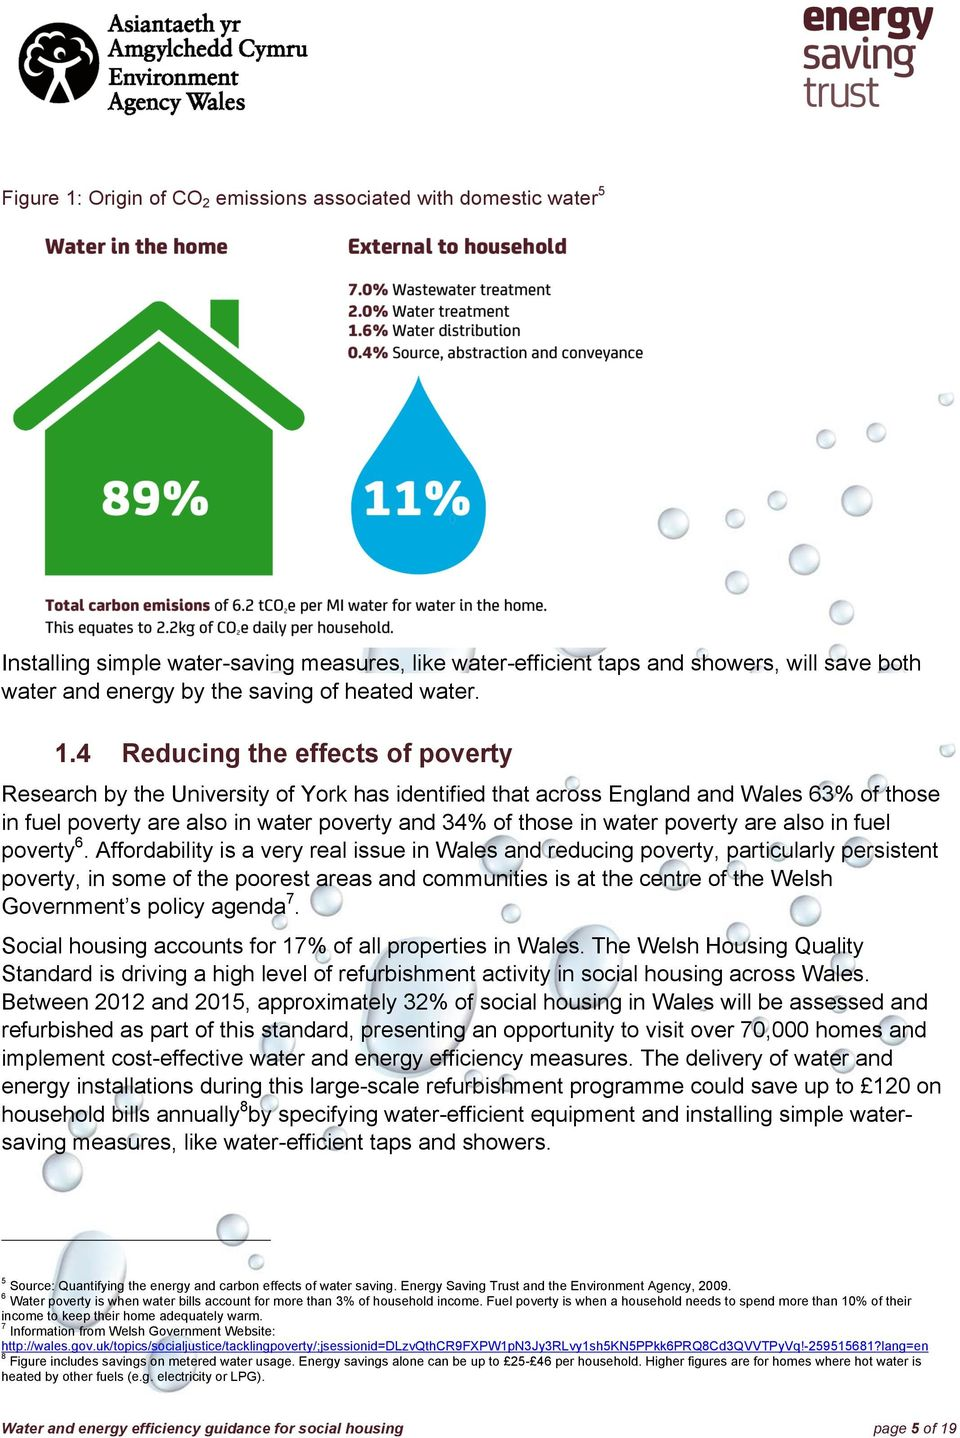 4 Reducing the effects of poverty Research by the University of York has identified that across England and Wales 63% of those in fuel poverty are also in water poverty and 34% of those in water